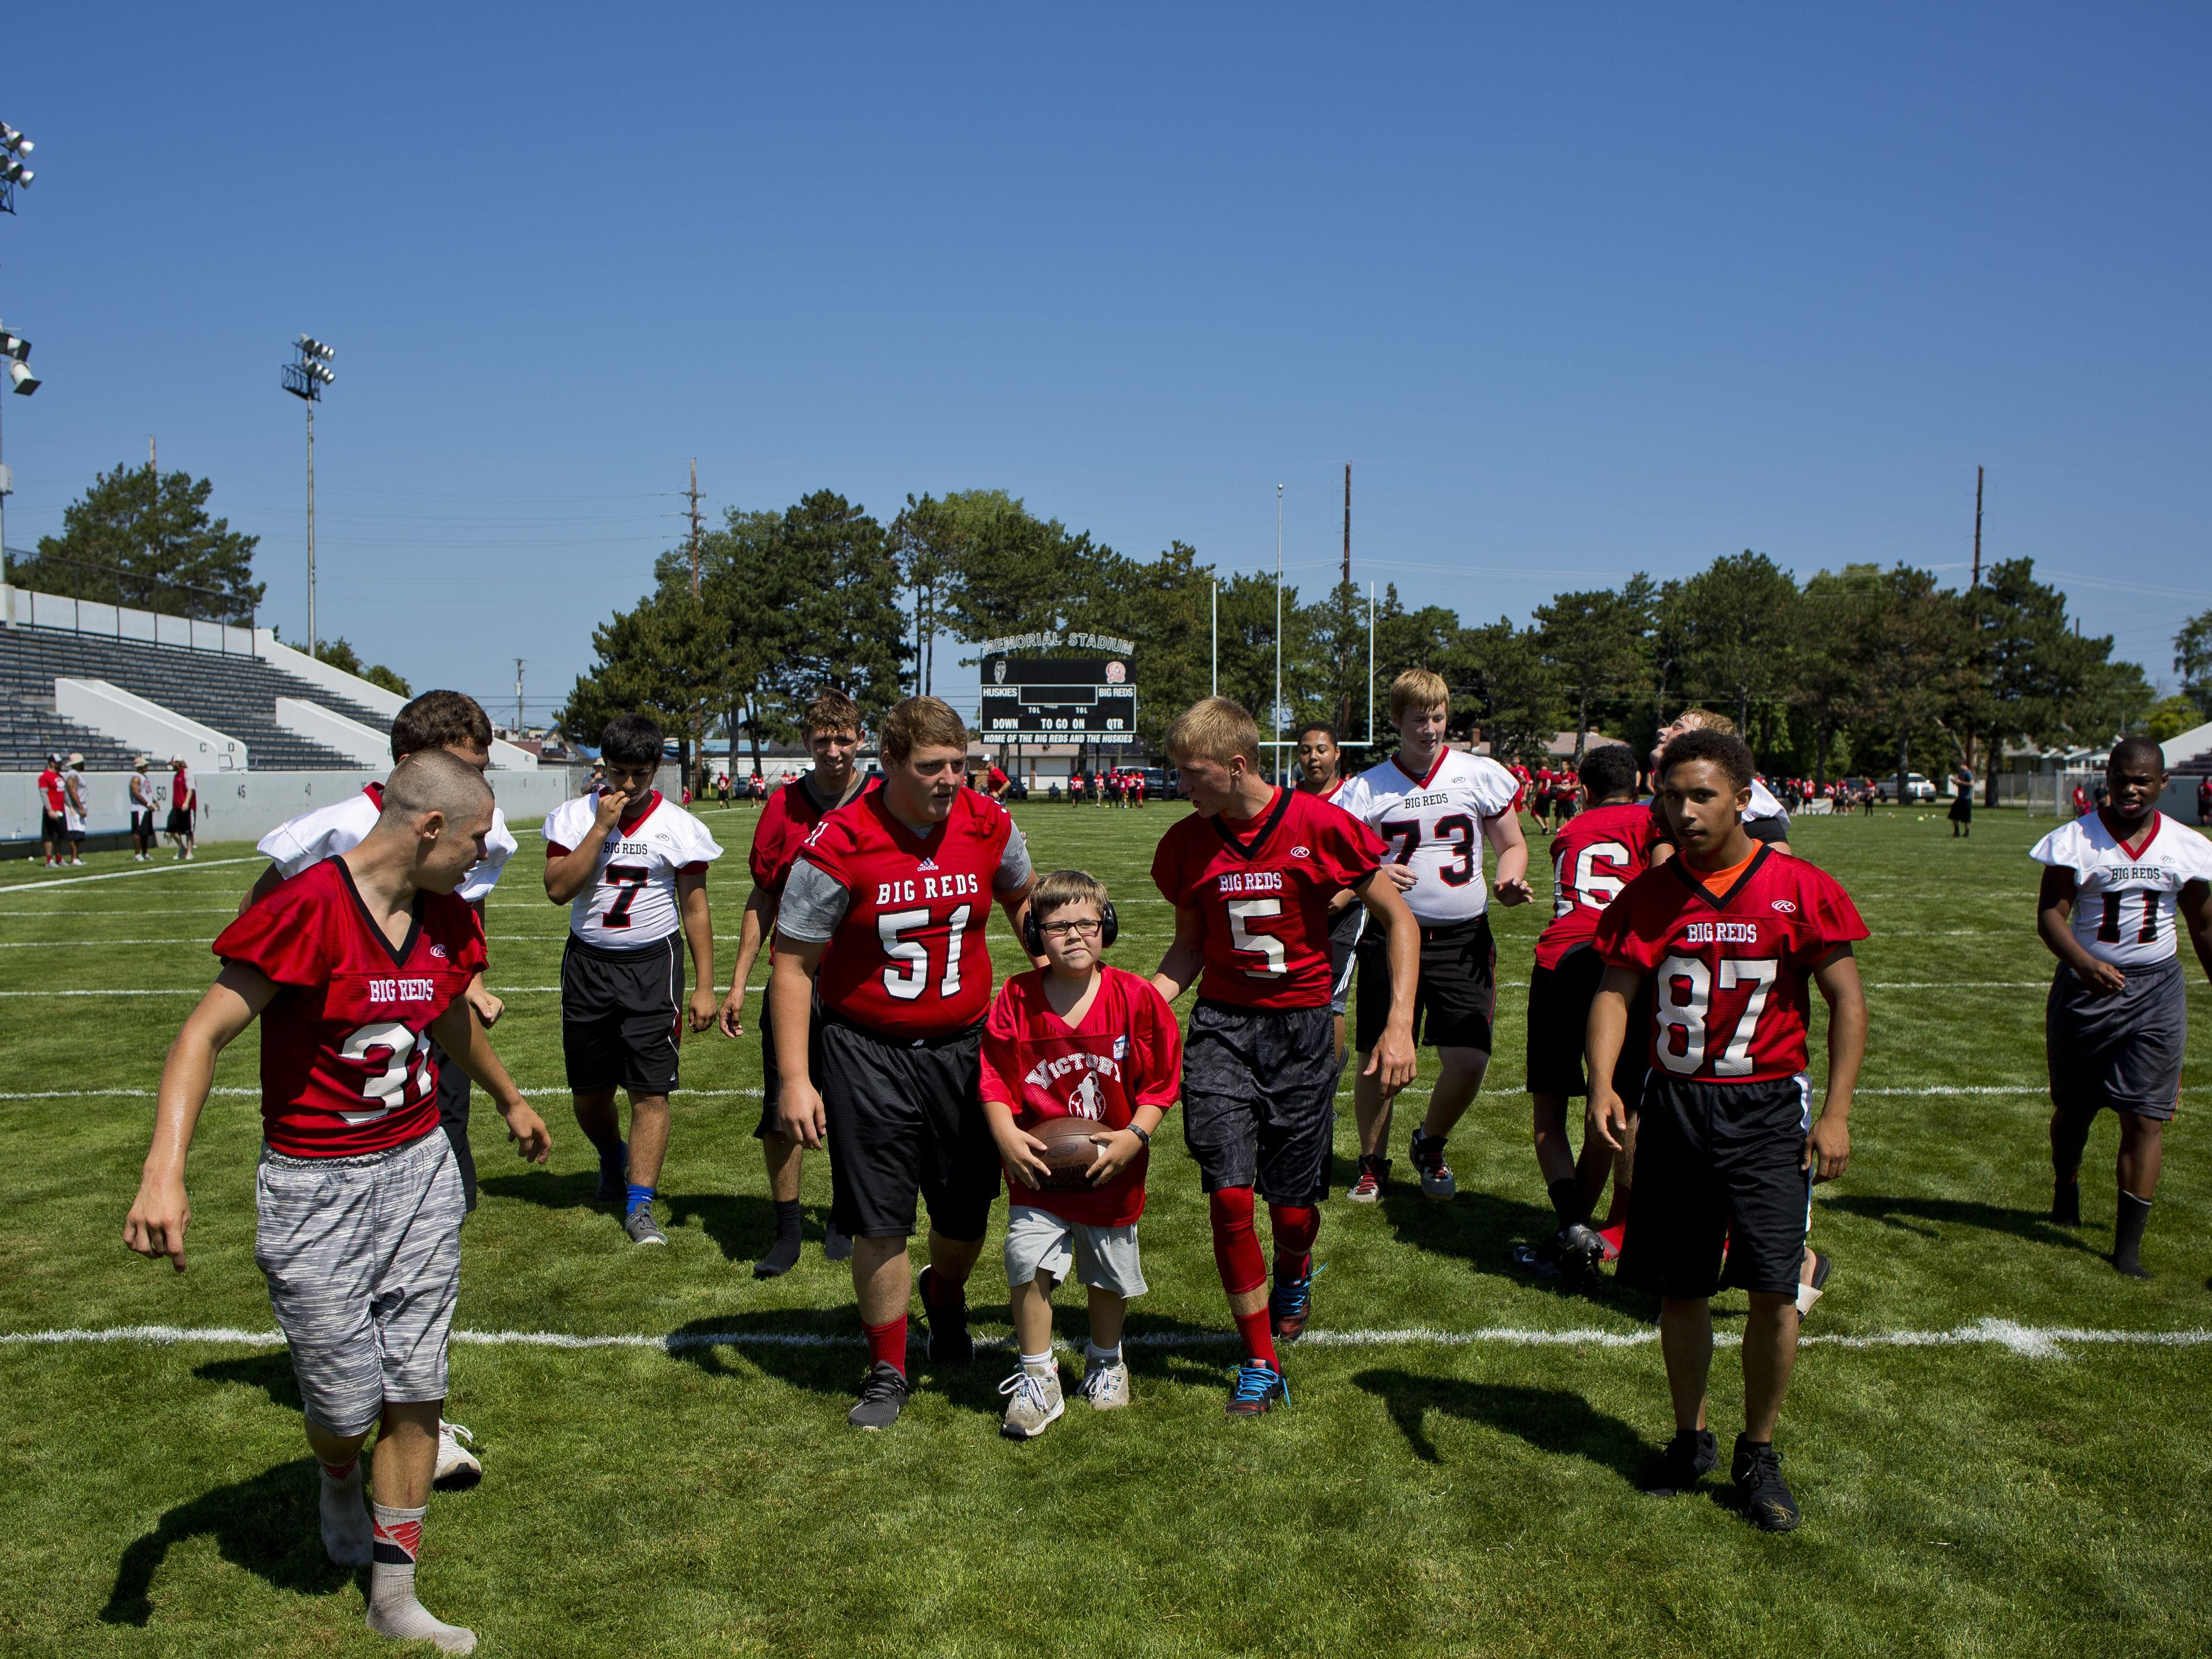 Johnathan Larson, center, is cheered on as he runs the ball down field during Victory Day Saturday, August 15, 2015 in Memorial Stadium at Port Huron High School. The event paired special needs students with mentors from the football and cheerleading teams.